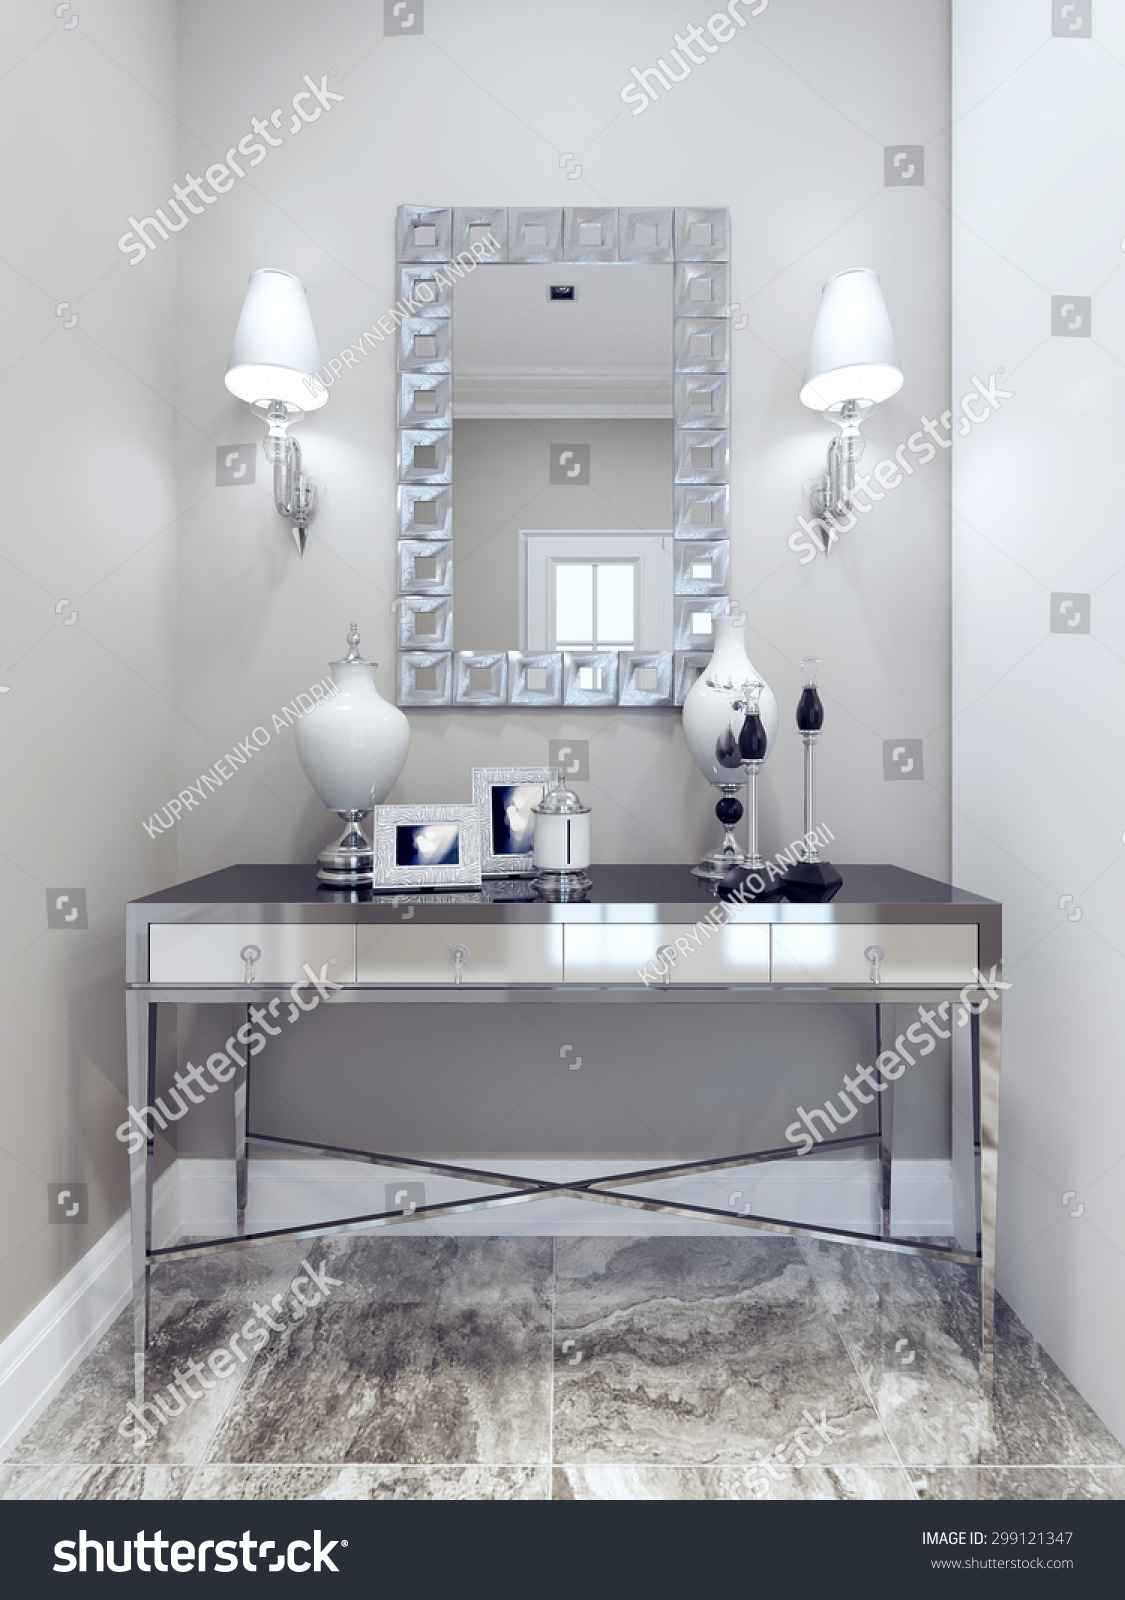 Design classic hall mirror decorative frame stock illustration mirror with decorative frame wall console marble floor dailygadgetfo Image collections